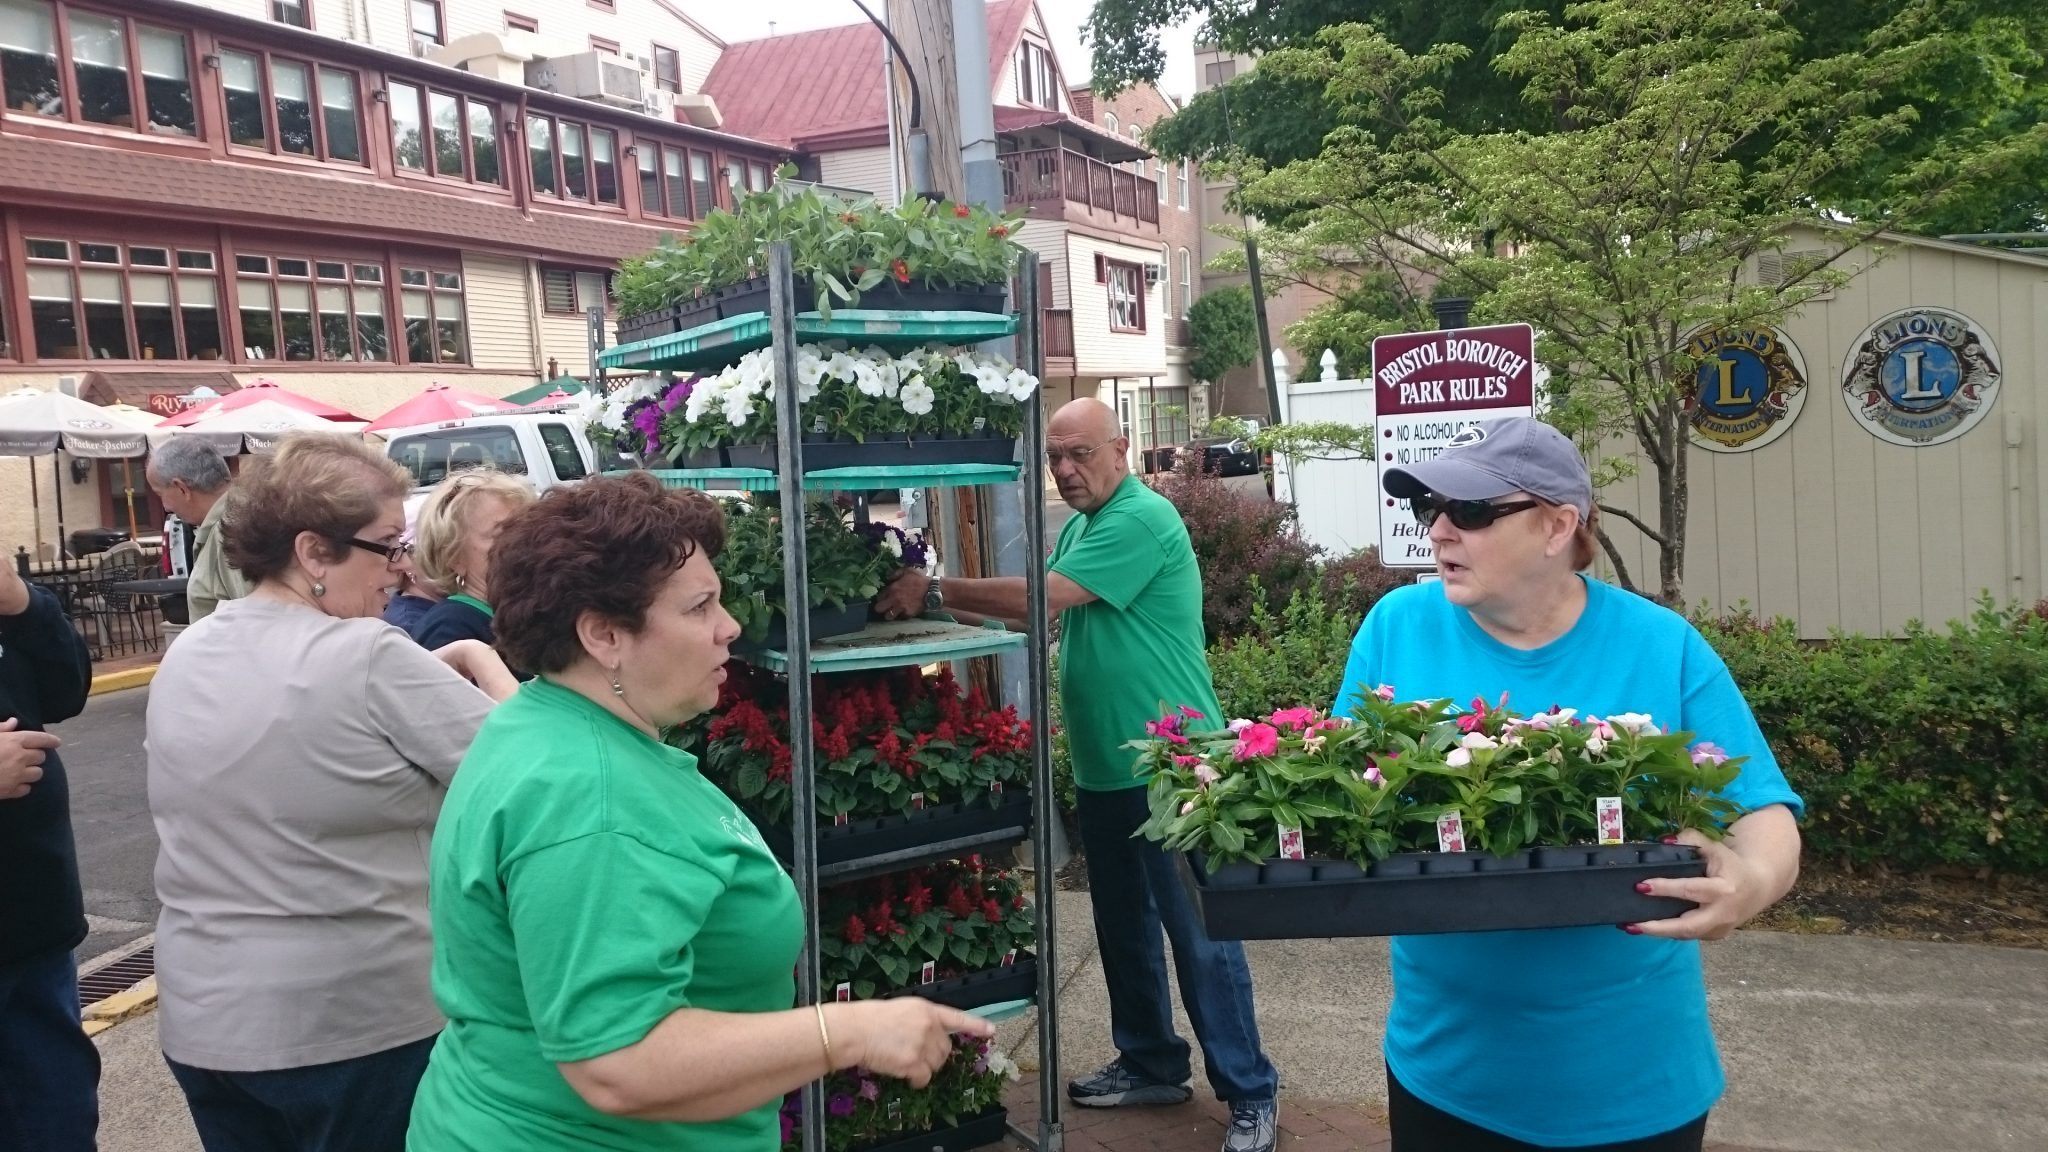 Bristol Borough Raising the Bar Hosts Sale To Beautify The Town